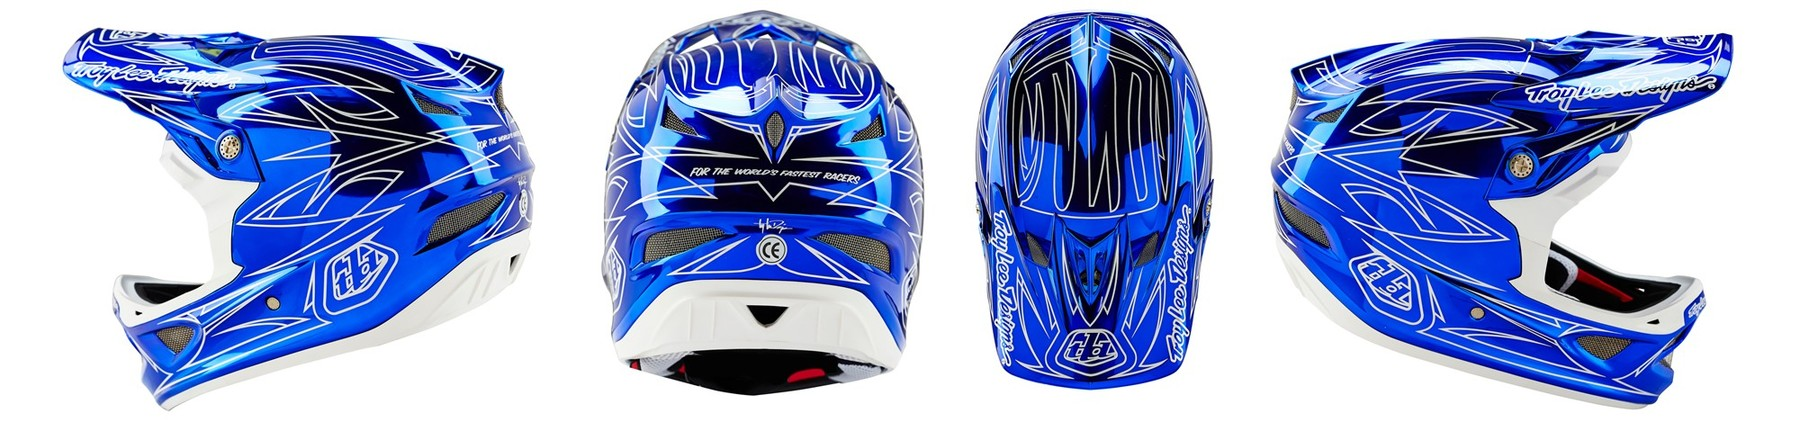 Troy Lee Designs D3 PINSTRIPE II